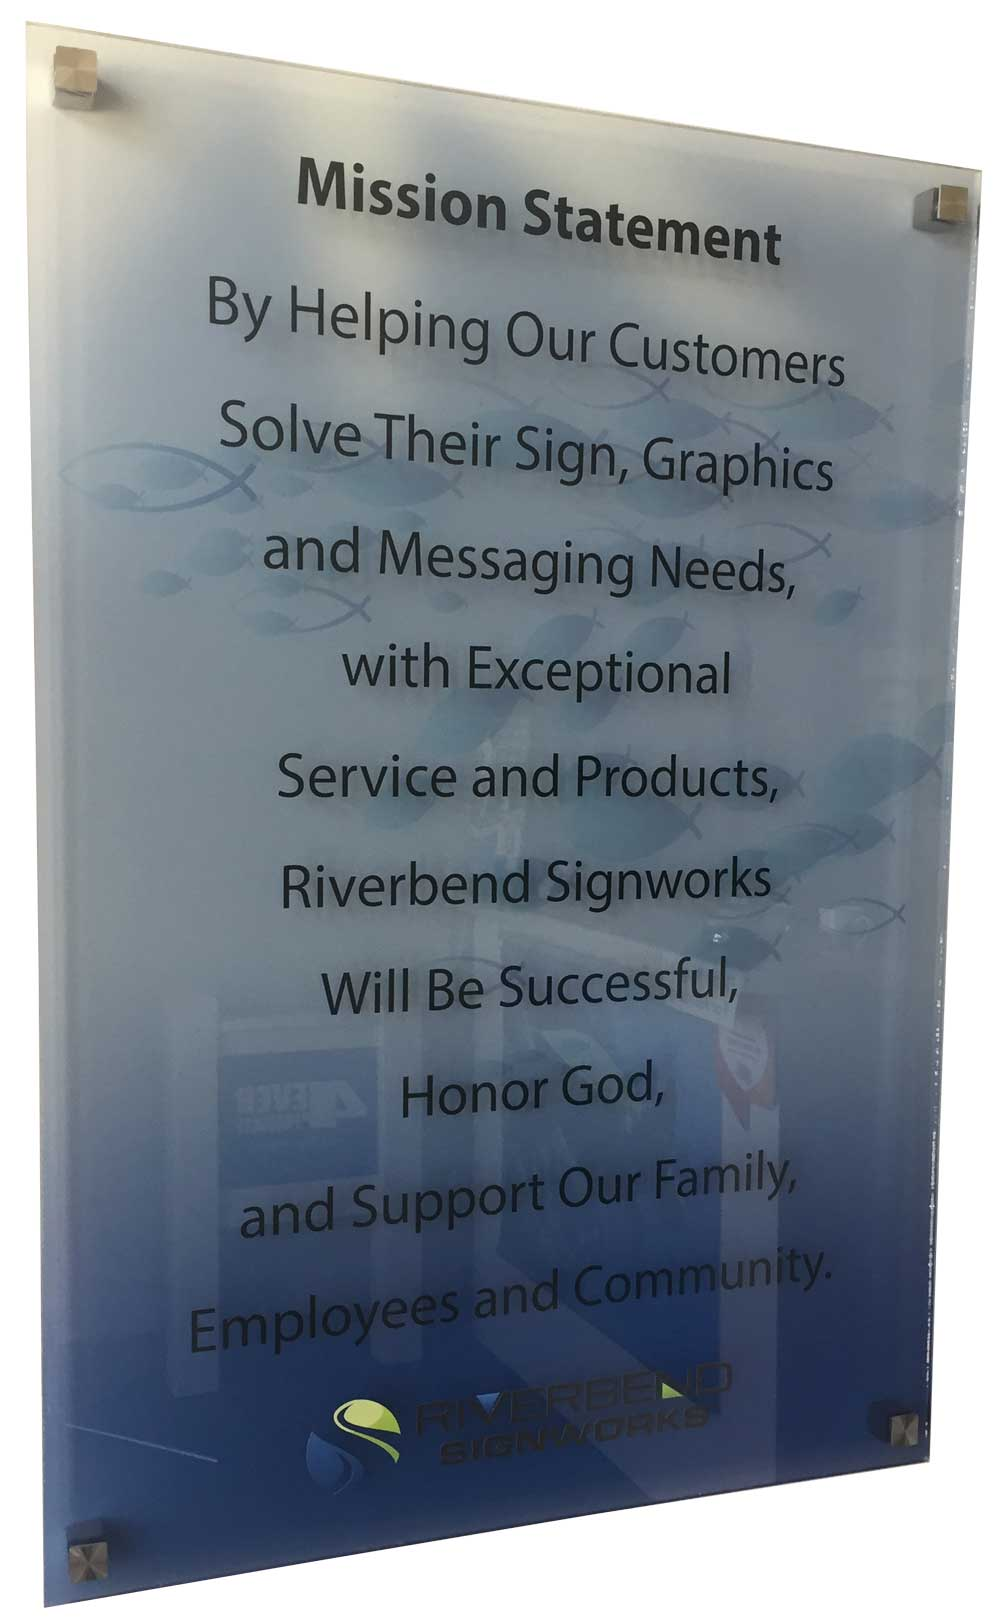 Mission Statement at Riverbend Signworks